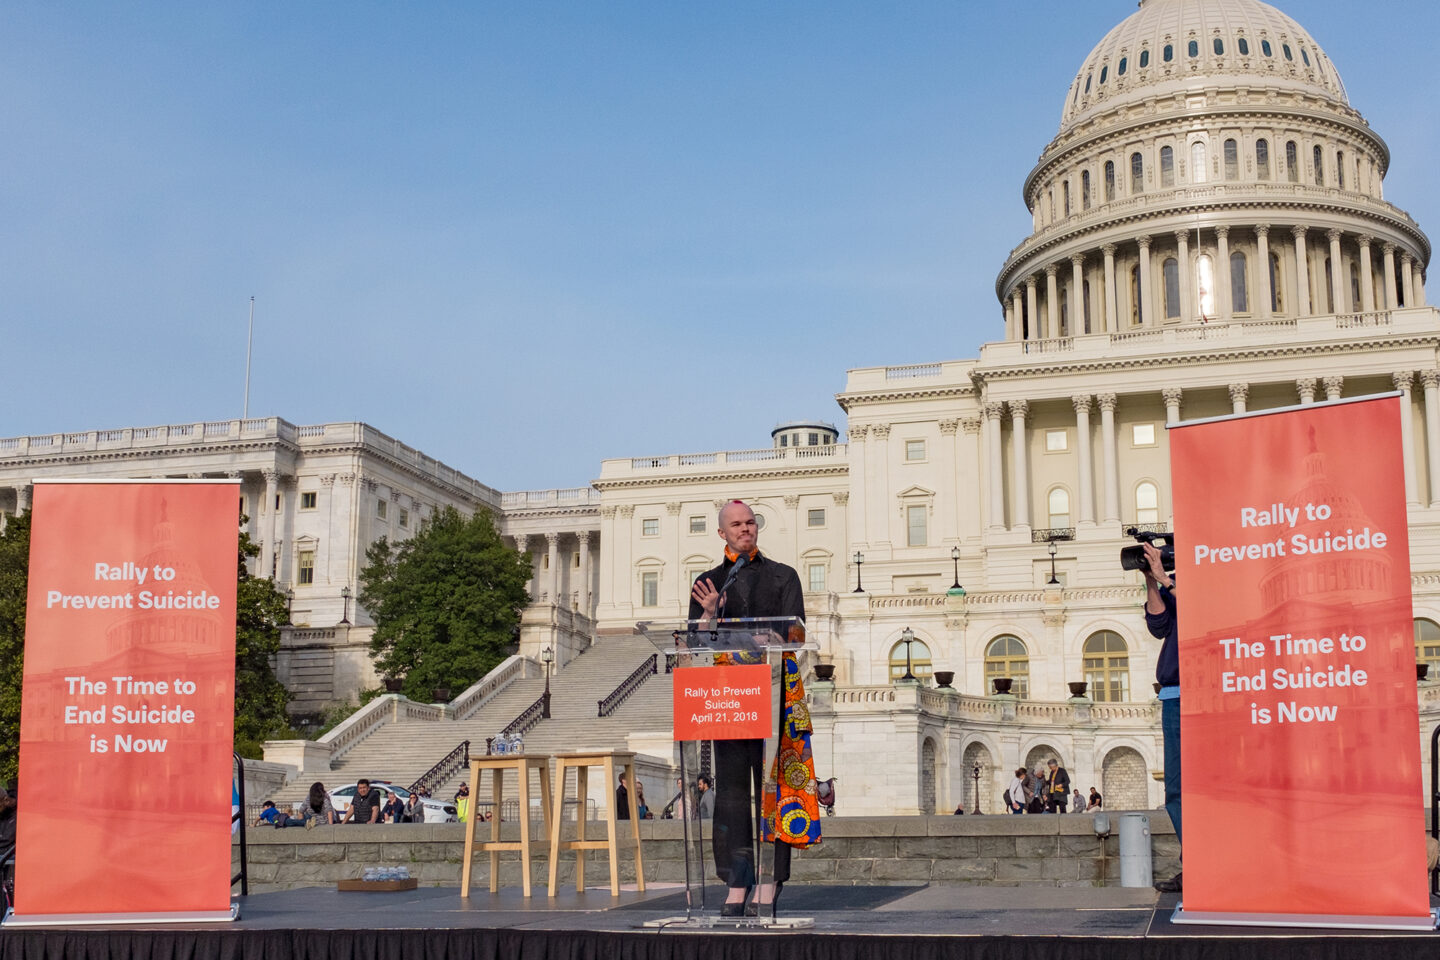 """Sam speaks to a crowd in front of the Capitol Building in Washington, D.C. They stand between two large orange signs that say, """"Rally To Prevent Suicide, The Time to End Suicide is Now."""""""